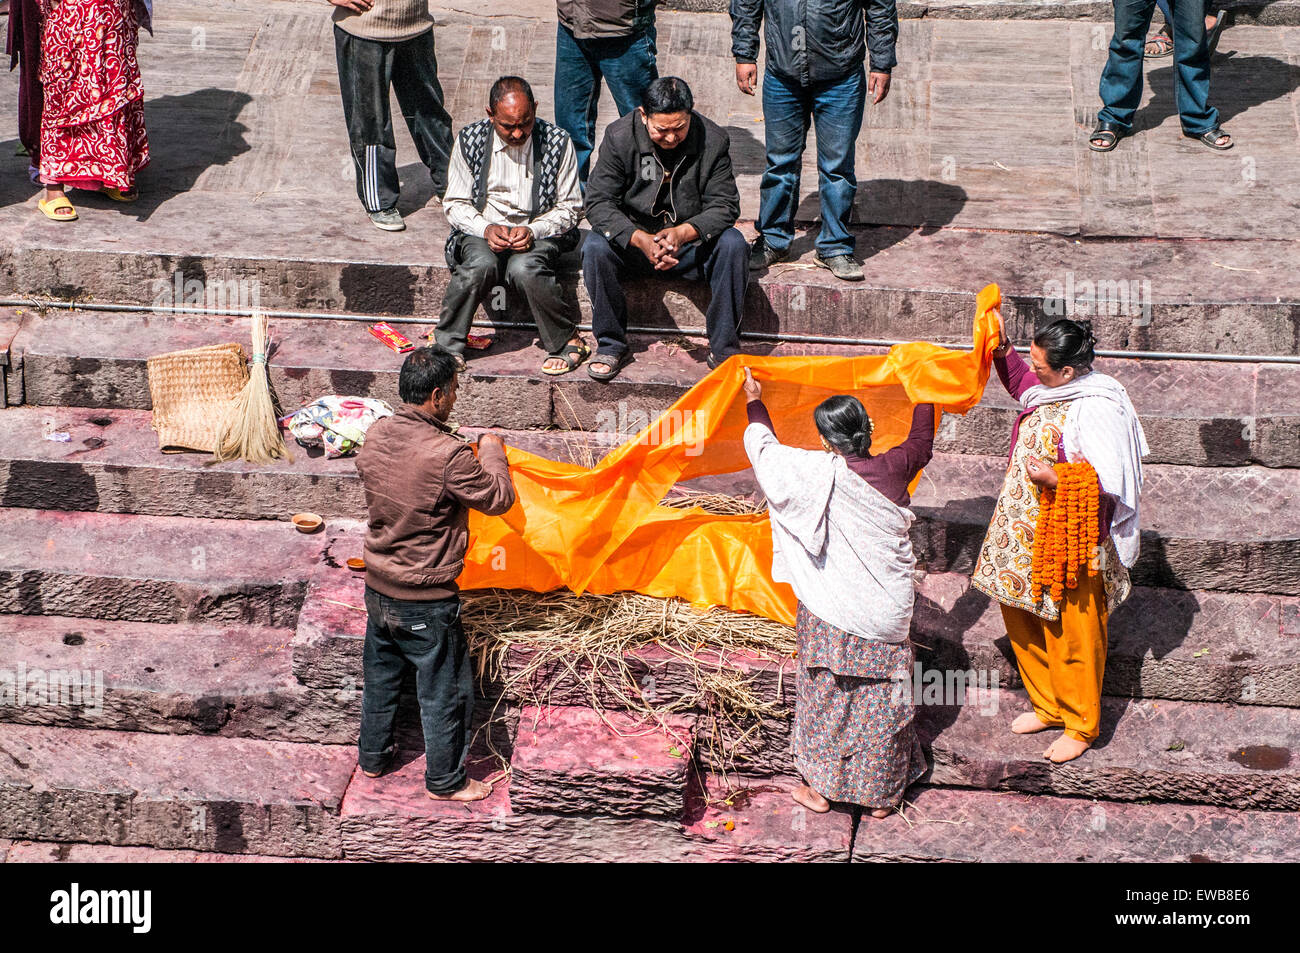 A Hindu funeral at Pashupatinath Temple, a Hindu temple located on the banks of the Bagmati River. Kathmandu, Nepal - Stock Image